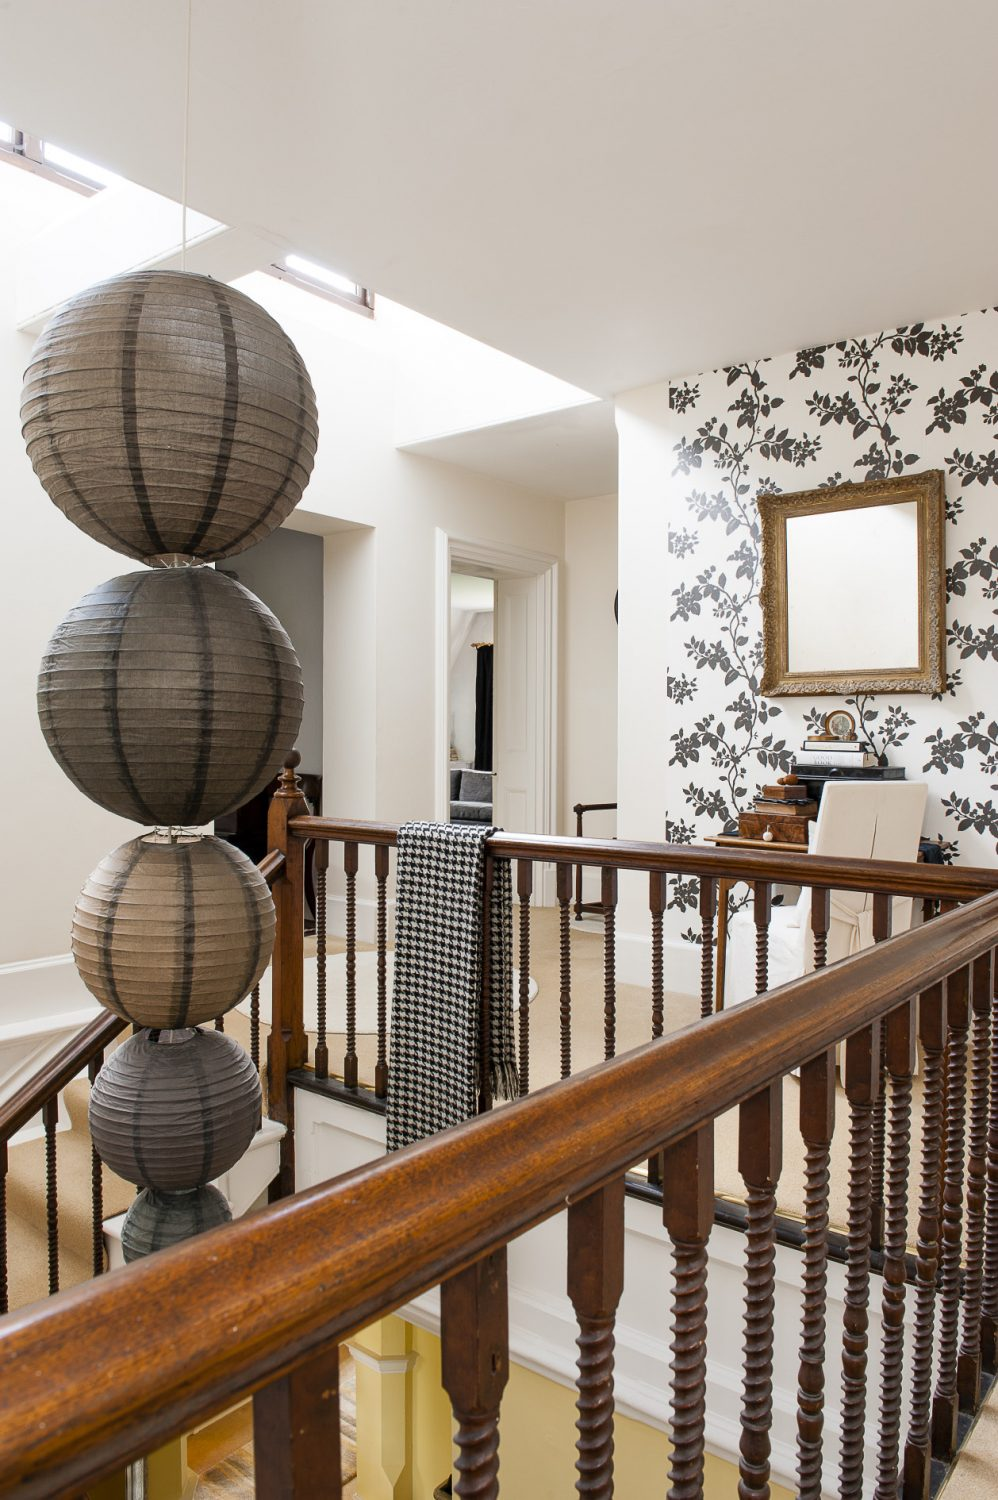 A lovely original staircase hung with a bespoke string of paper lanterns leads to the top floor, part of which was probably the original family's children's bedrooms and perhaps the nursery